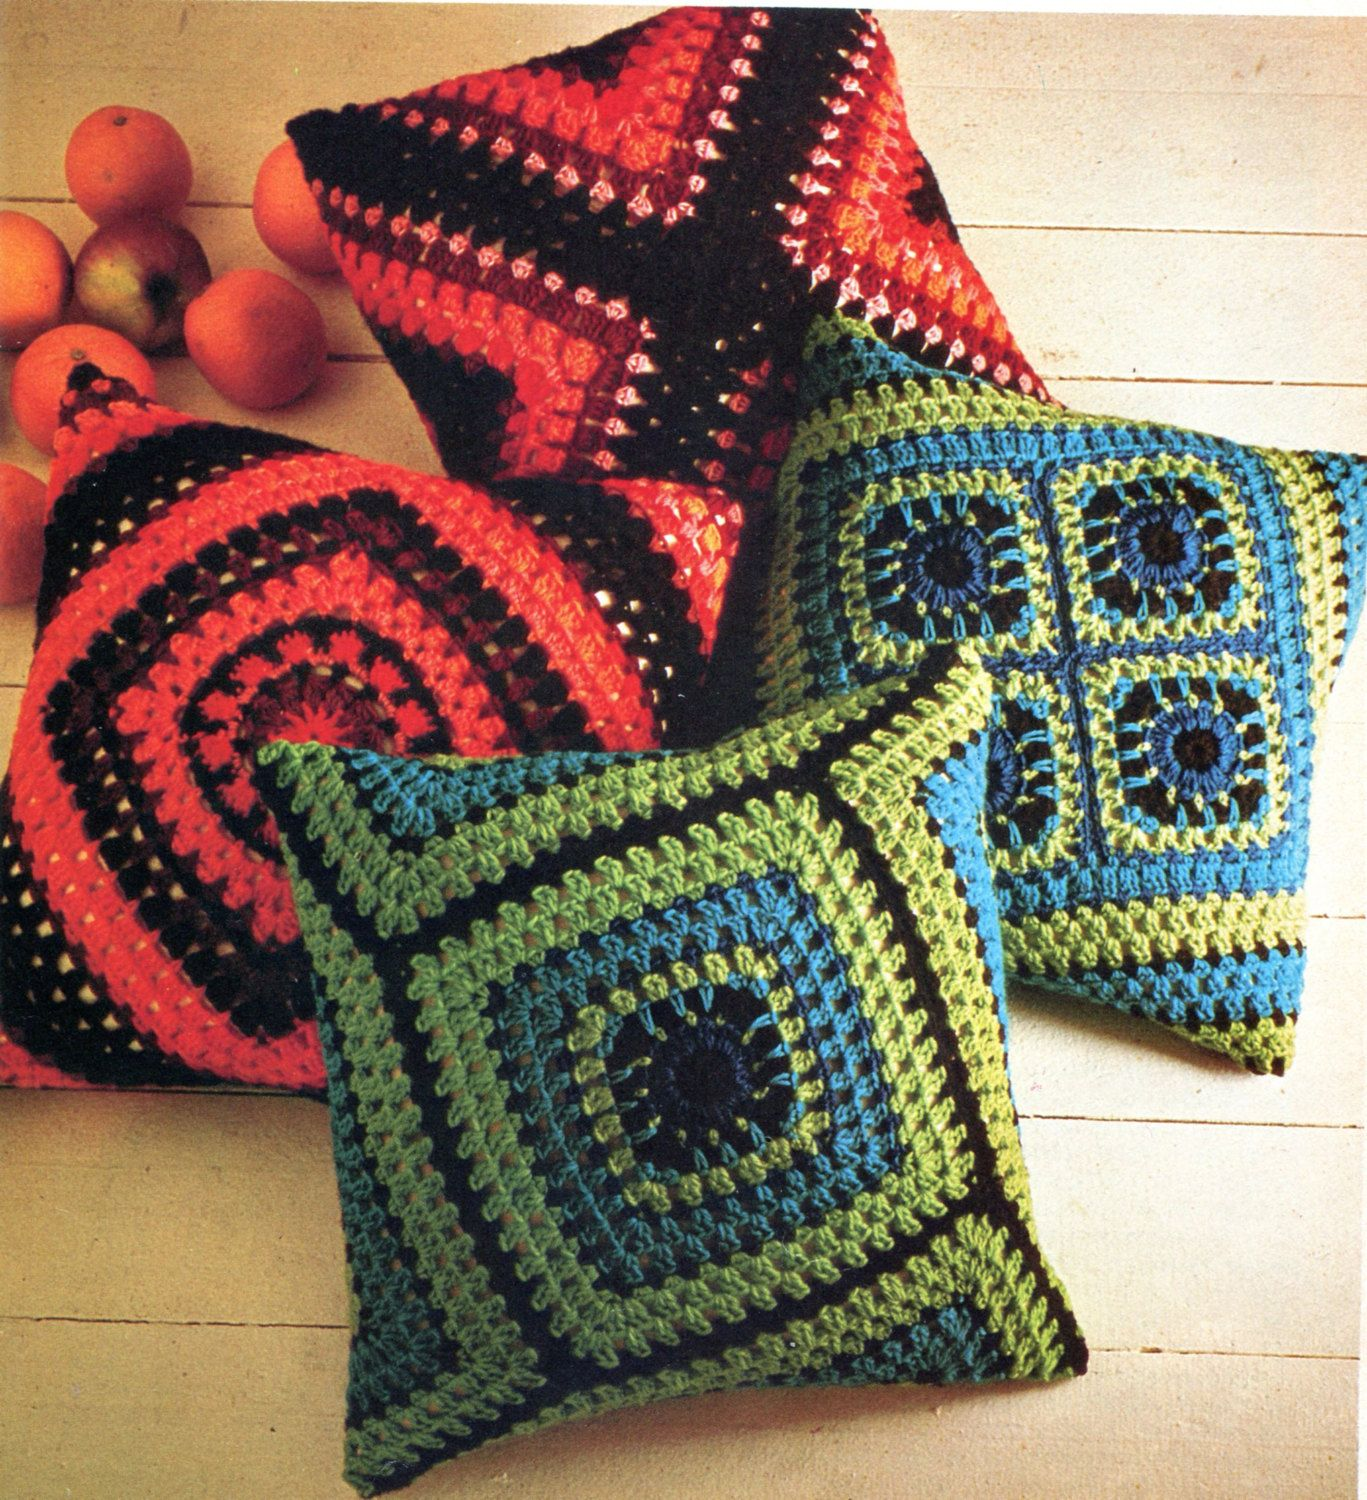 Two Fabulous Crochet Granny Square Pillow от PearlShoreCat на Etsy